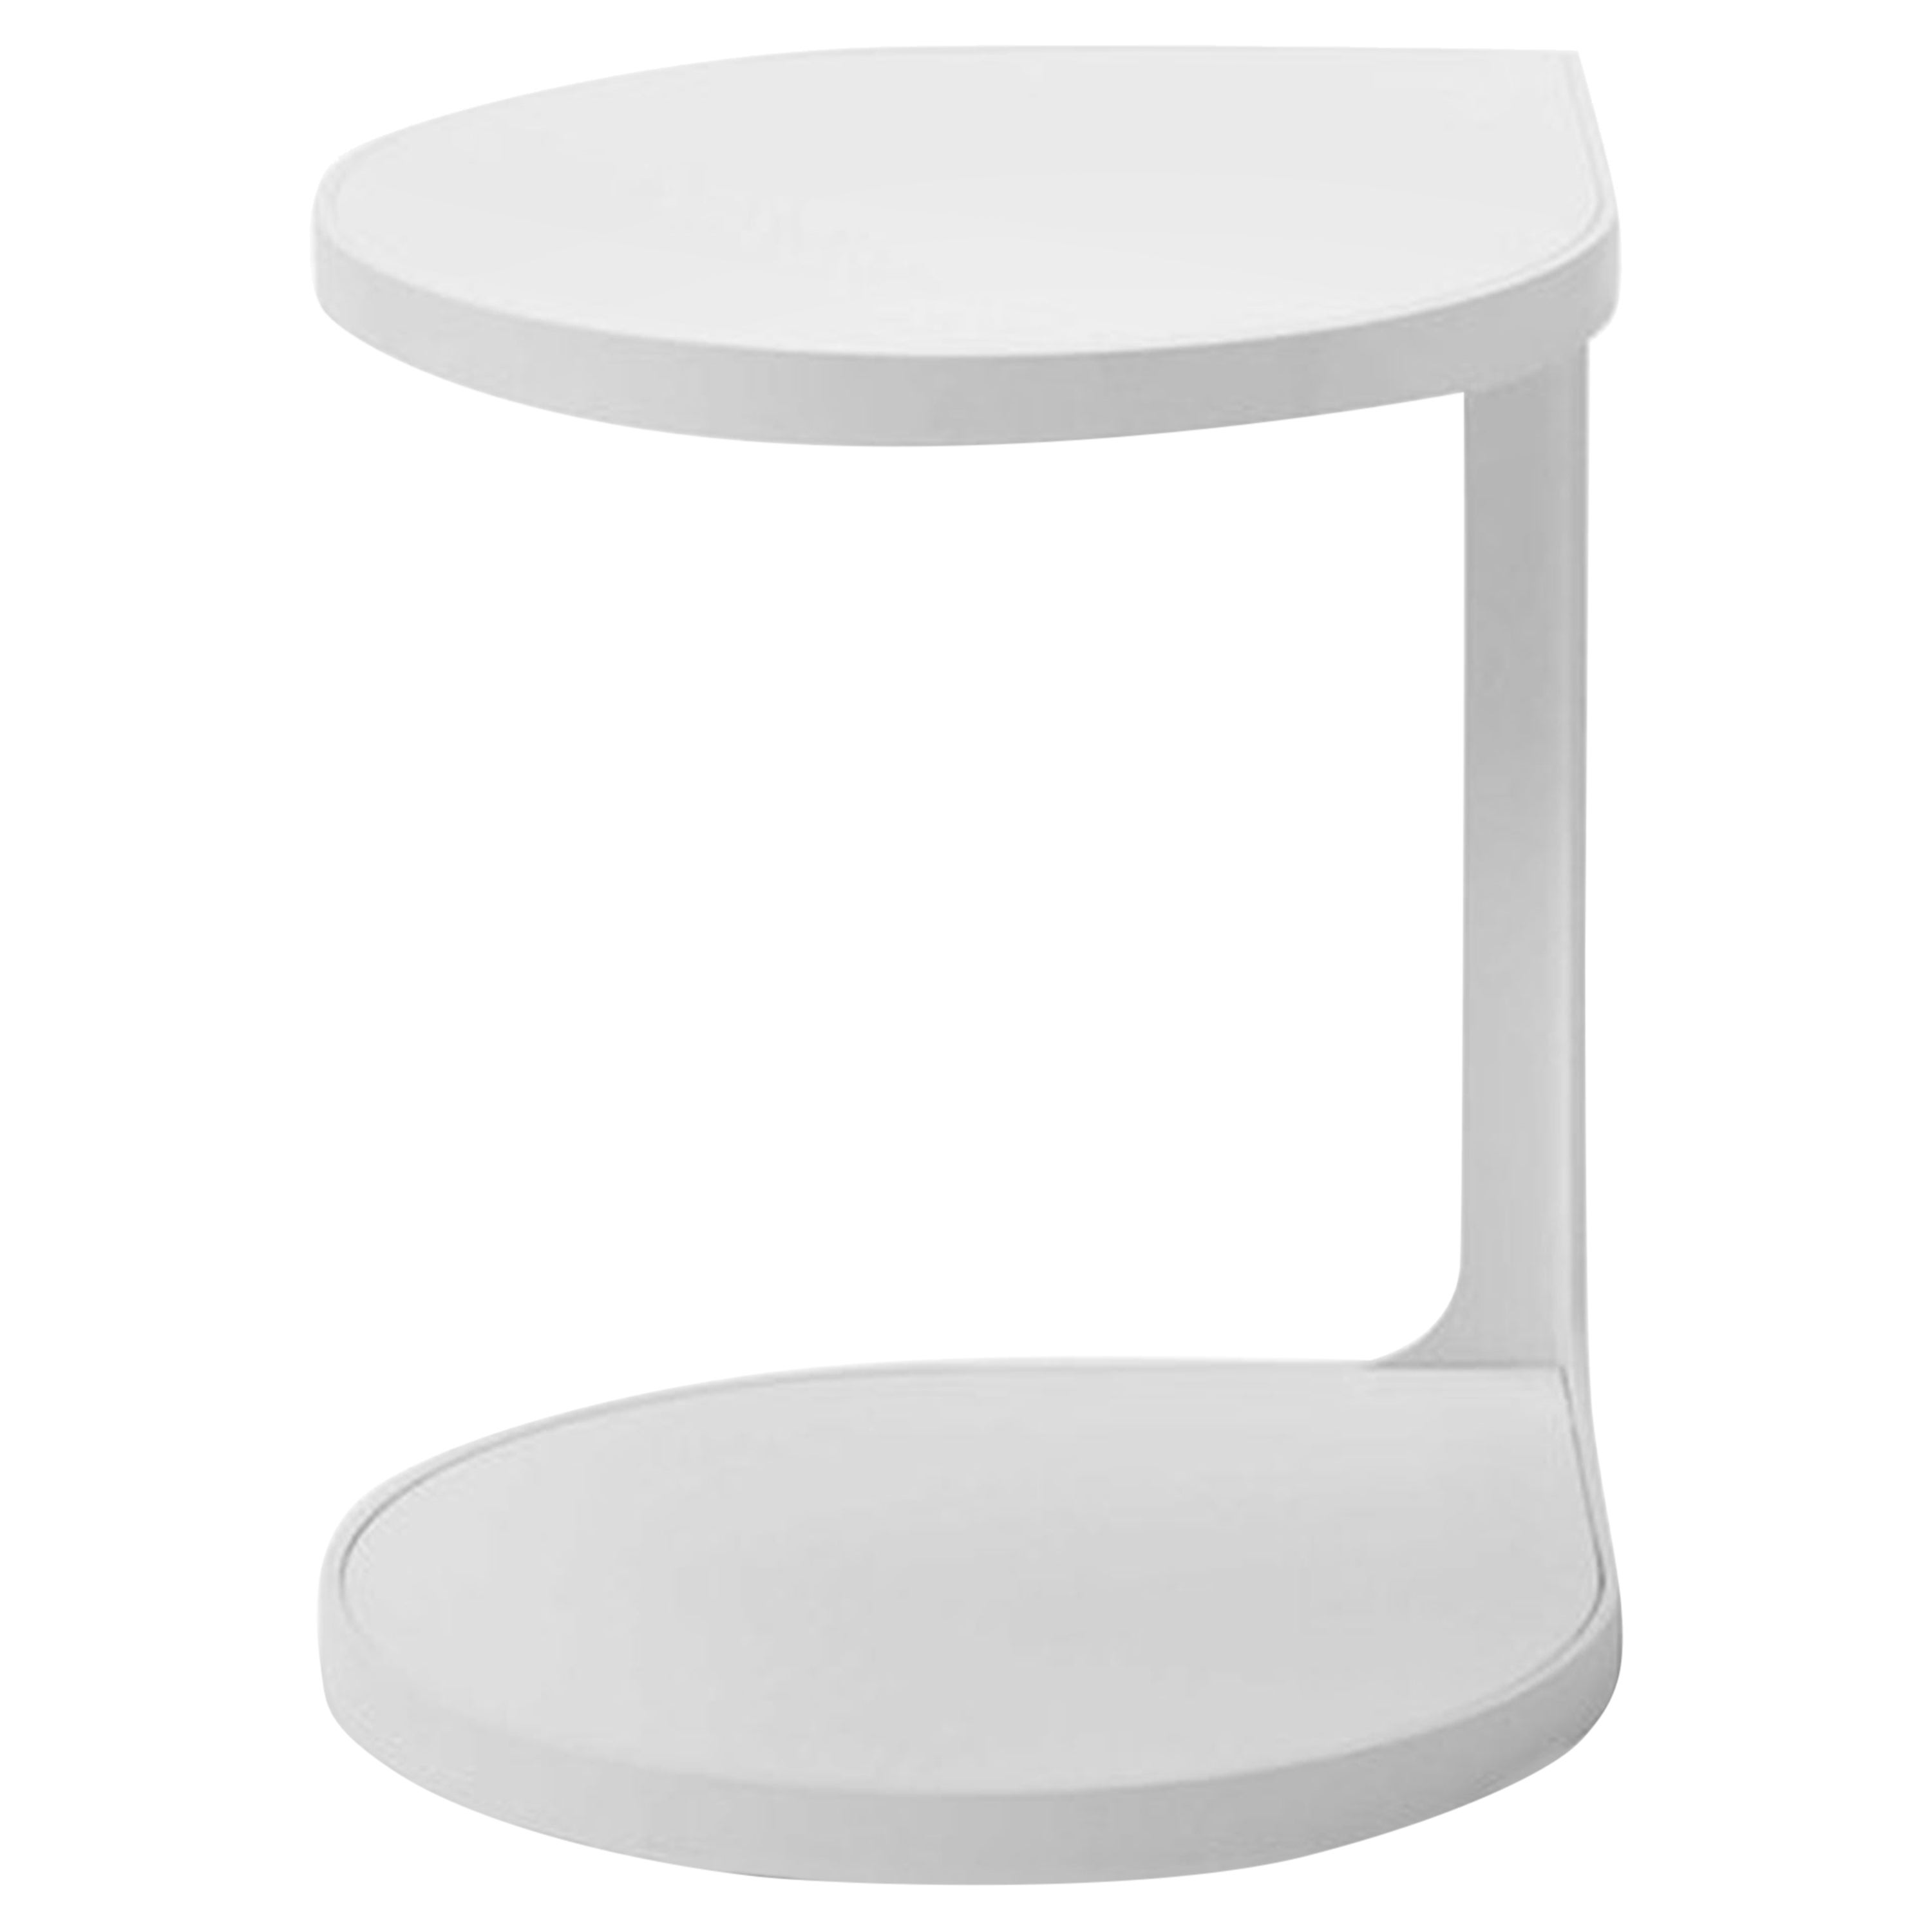 Tacchini Coot Side Table Designed by Gordon Guillaumier